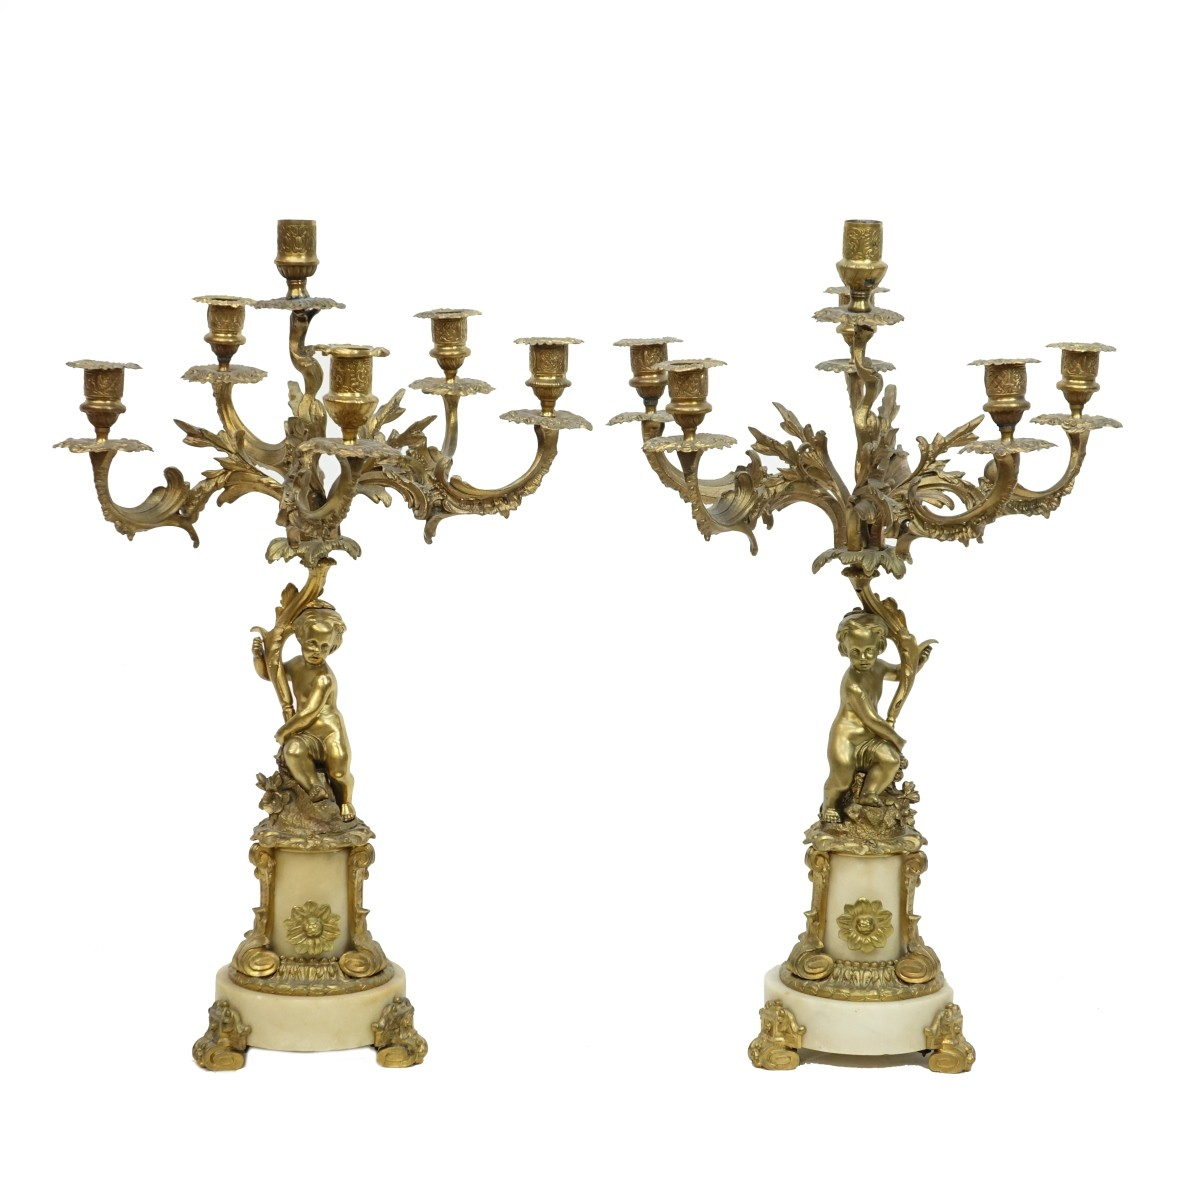 Pair of Antique French Bronze Candelabra